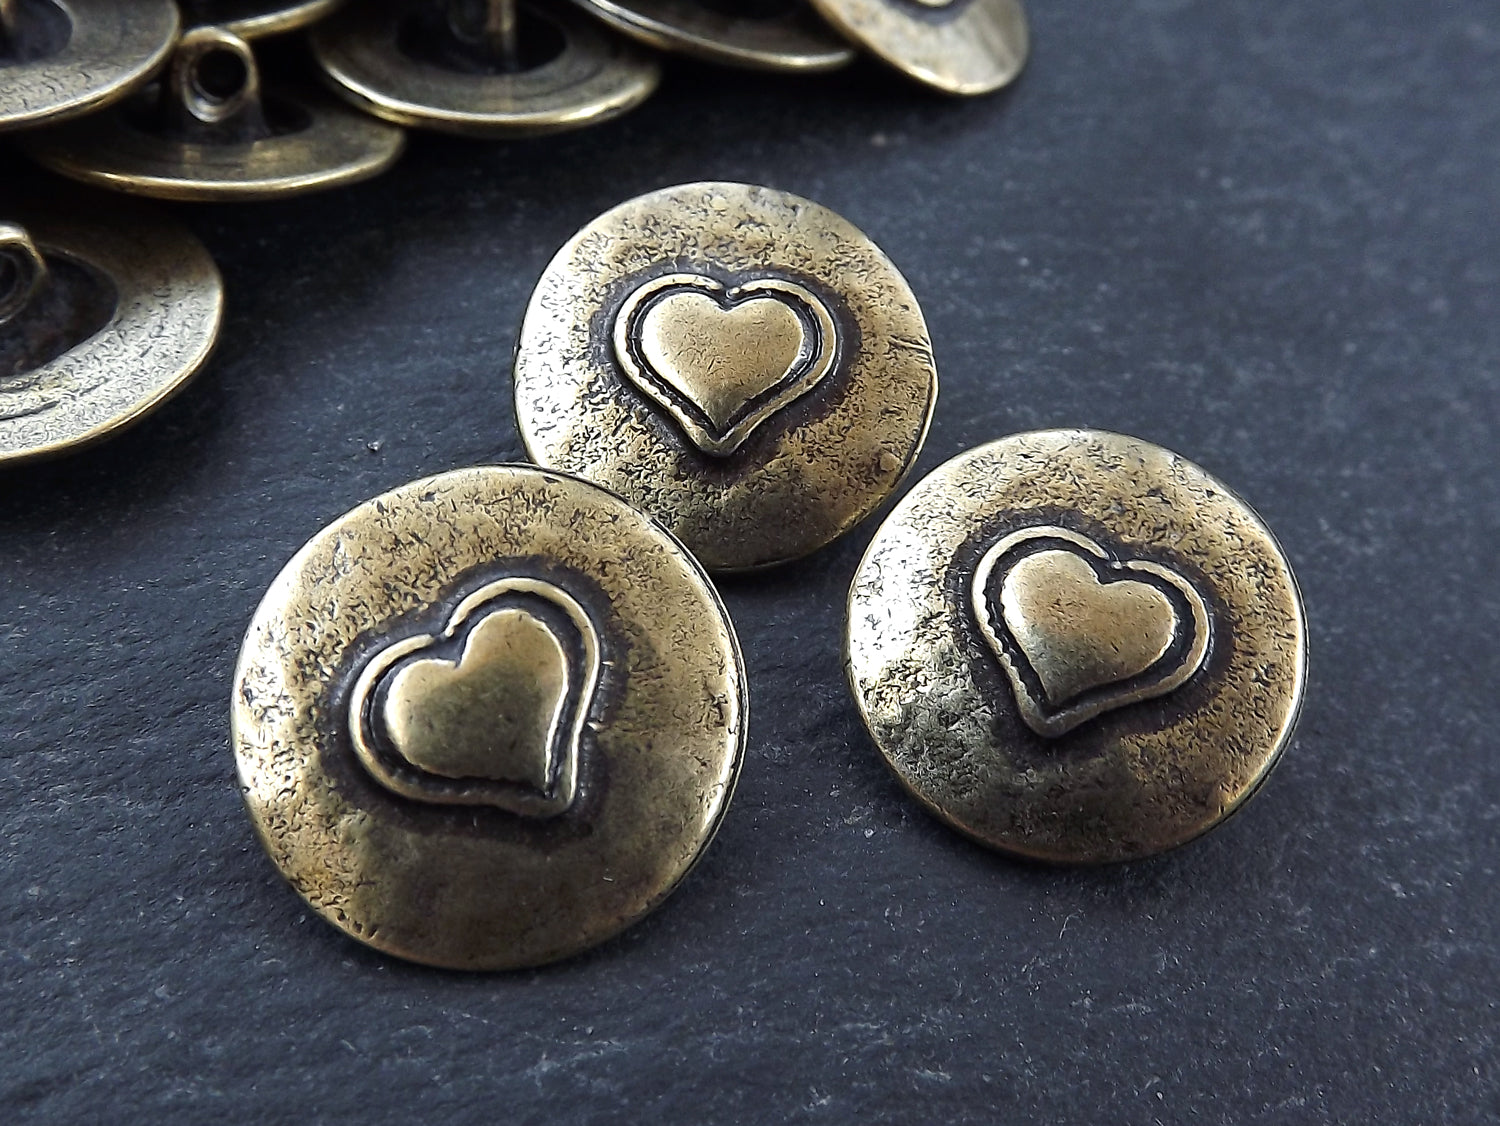 3 Rustic Metal Heart Buttons Antique Bronze Plated - Round Silver Buttons,  Metal Shank Button, Sewing Buttons, Jewelry Making Buttons